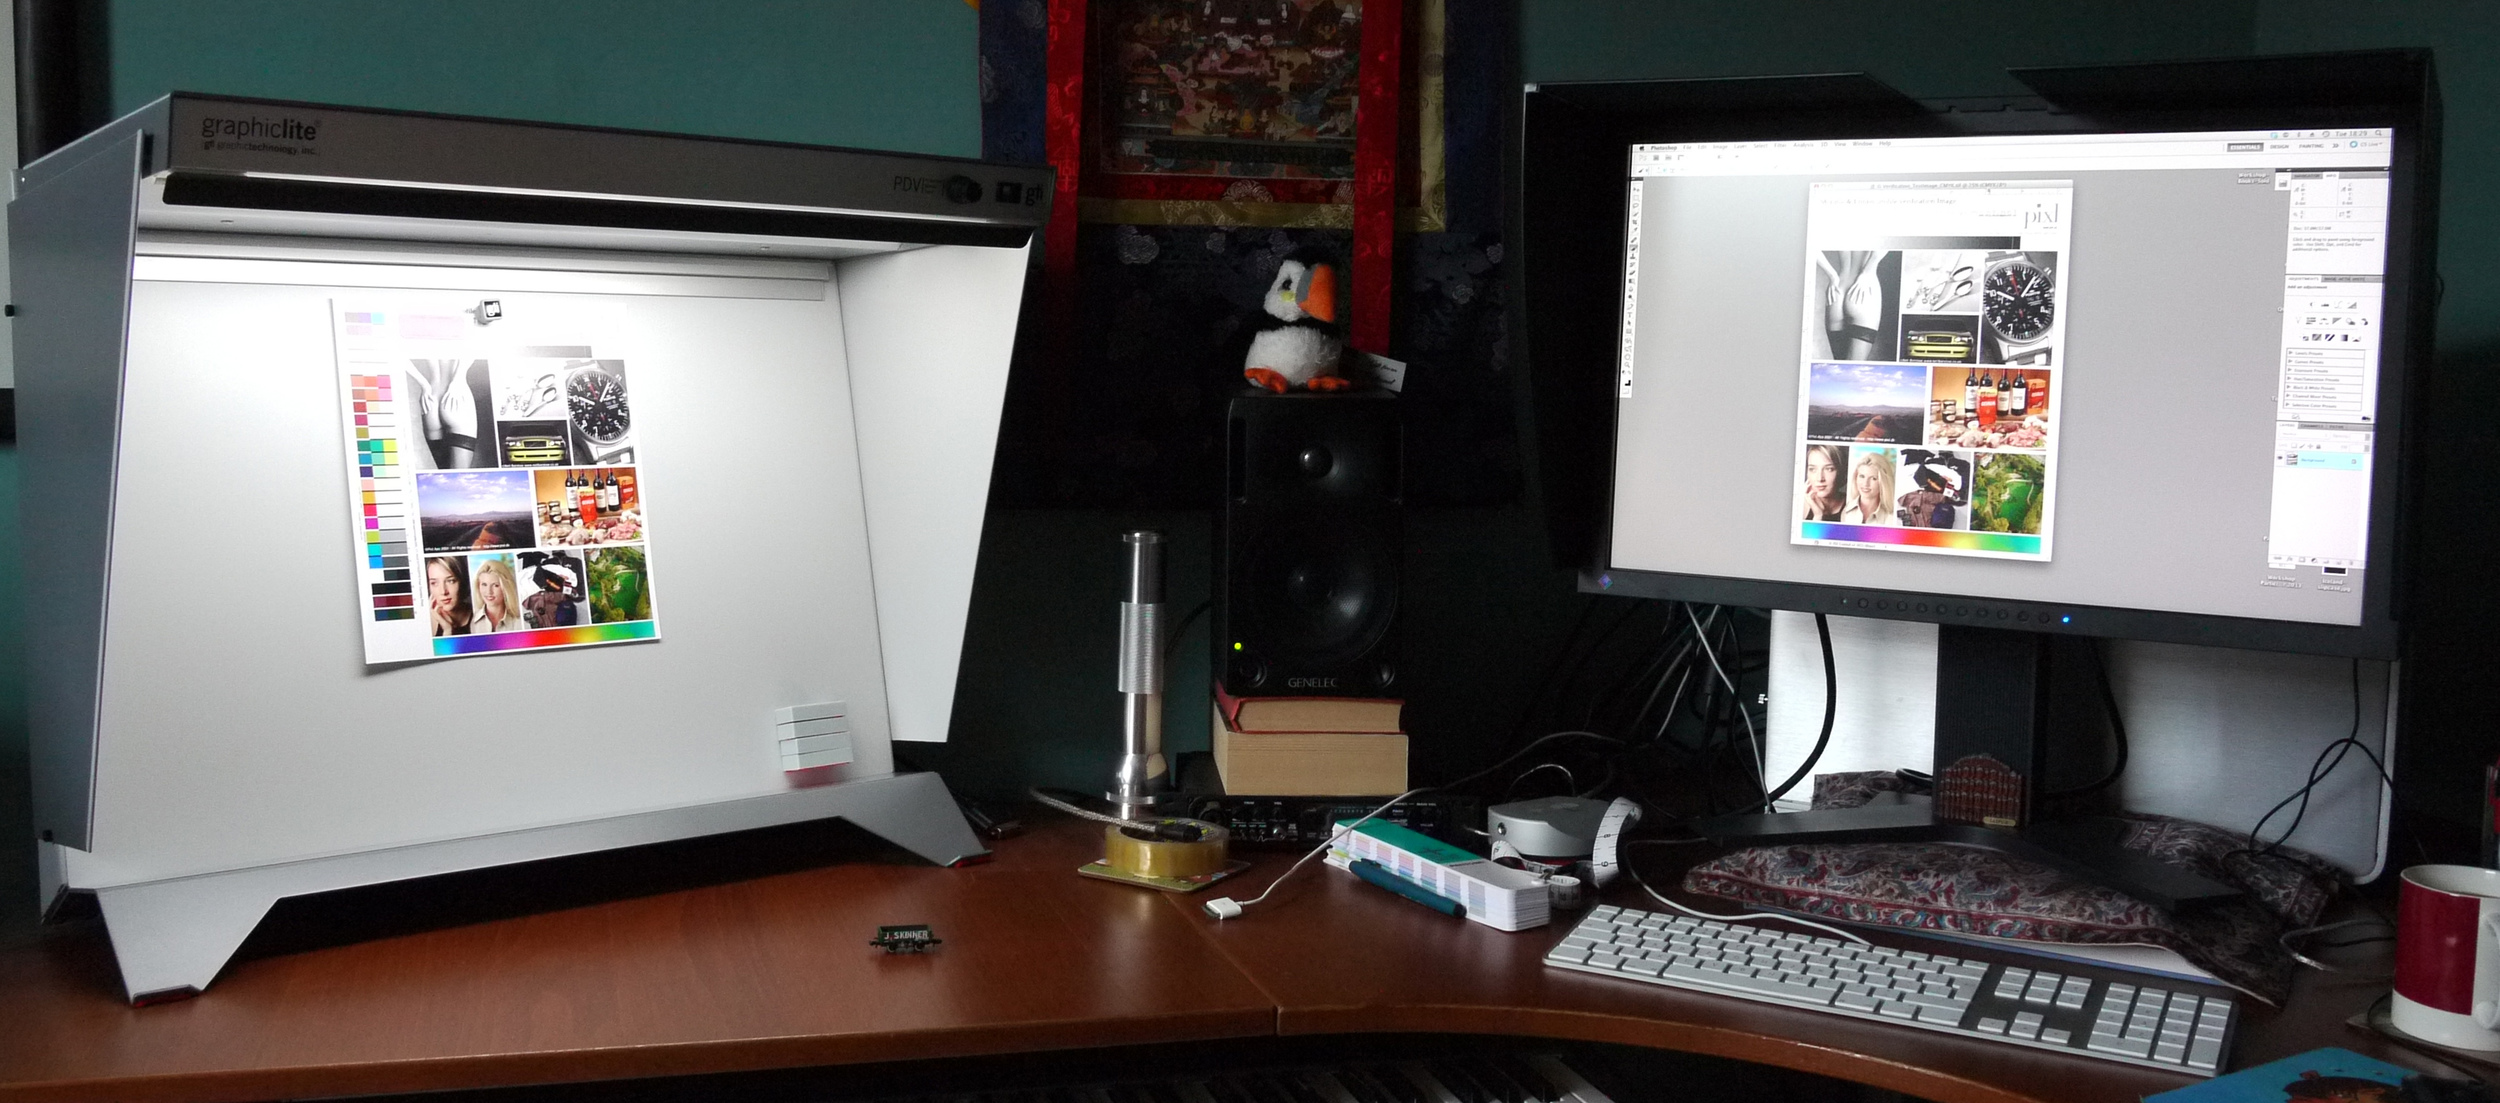 For essential colour accuracy, one must use a daylight viewing booth to confirm the profiling of your monitor. If the print target does not match the monitor - then the calibration / profiling is off. You also need to have a torch and an Icelandic Puffin in your studio too :-)